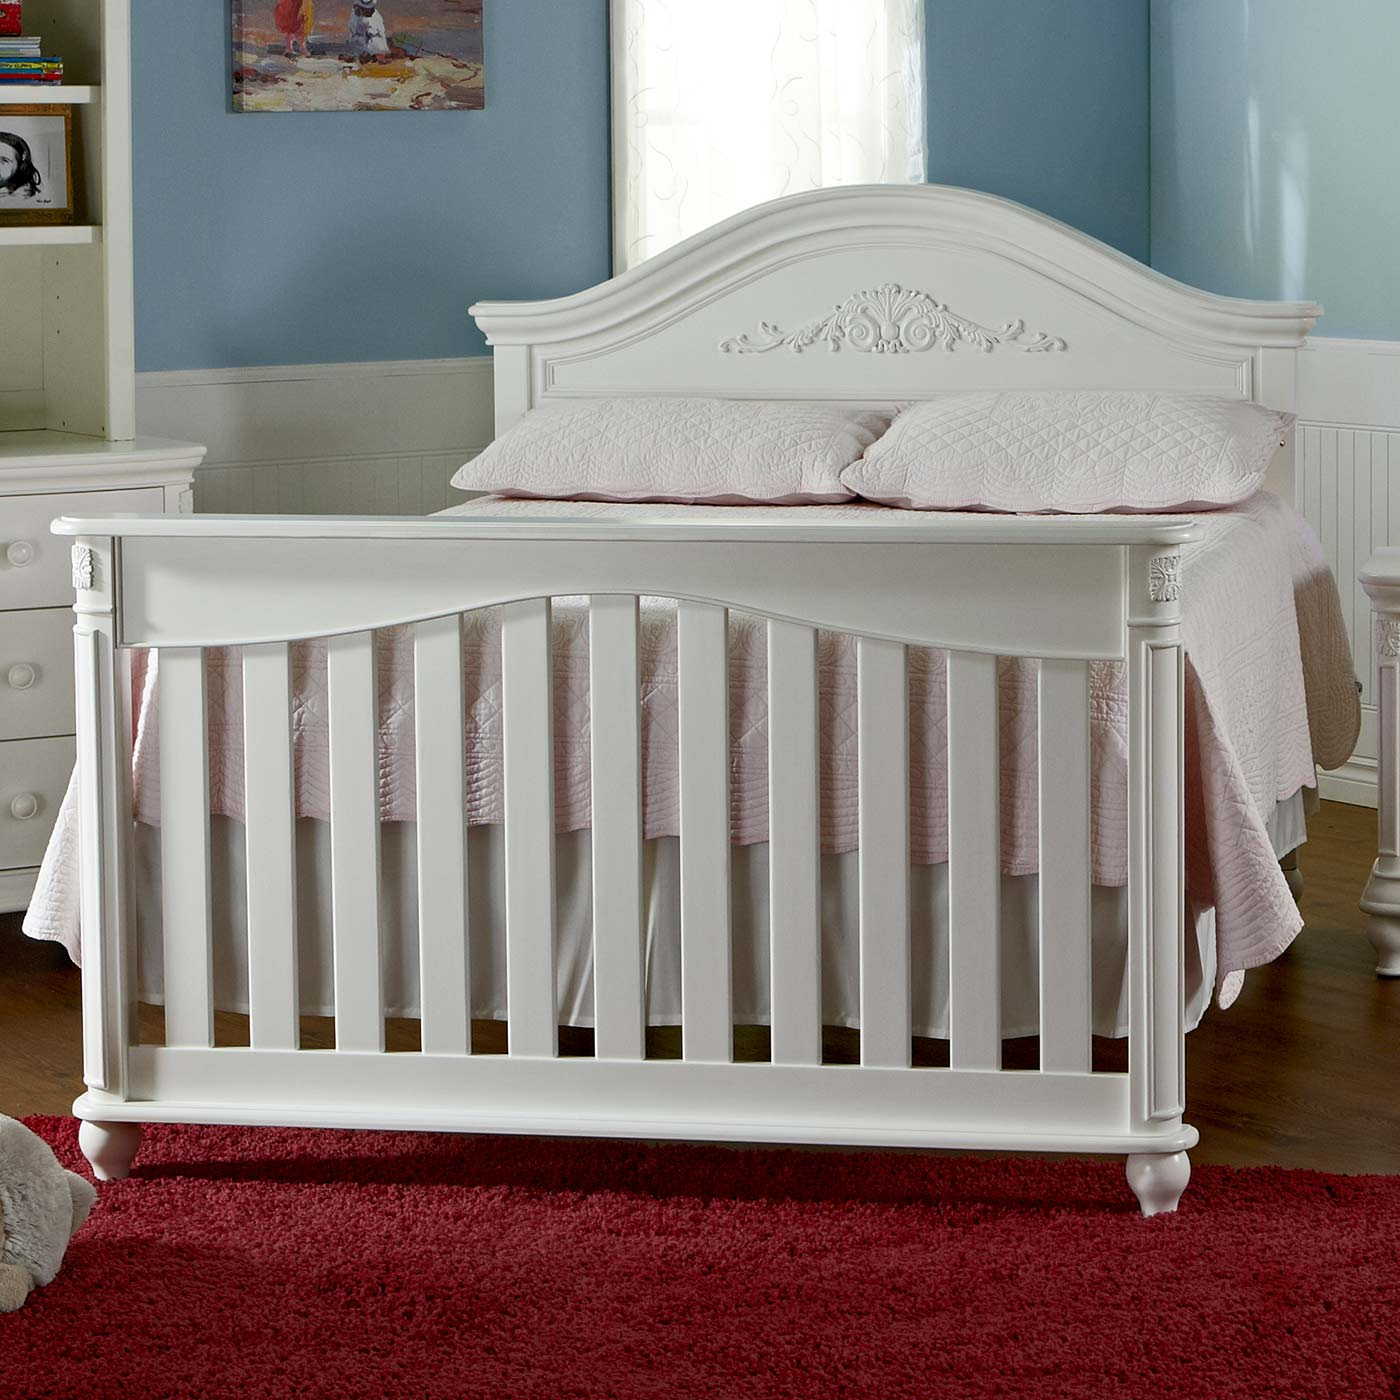 Pali crib for sale used - Pali Crib For Sale Used 6